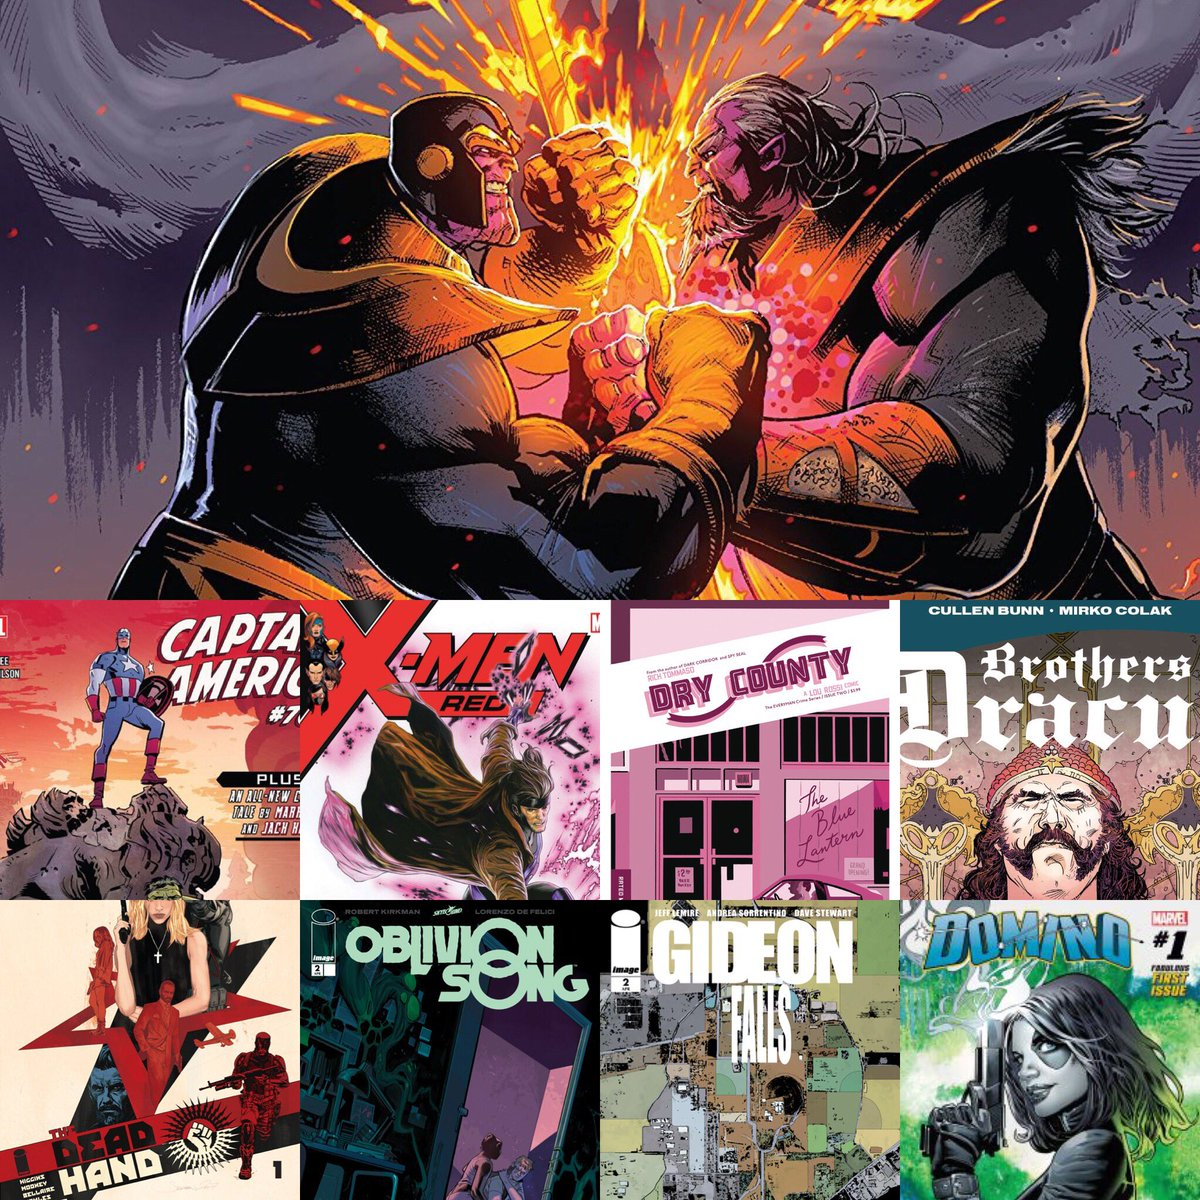 Looking for some #MondayMotivaton  Check Out our latest episode where we review the latest comics. #Marvel #DCComics #ImageComics #Thanos  #Batman #CaptainAmerica   #Xmen #DryCounty #OblivionSong #GideonFalls   http:// traffic.libsyn.com/nationofnerds/ Thanos_18.mp3 &nbsp; … <br>http://pic.twitter.com/hw0Gvag0dD